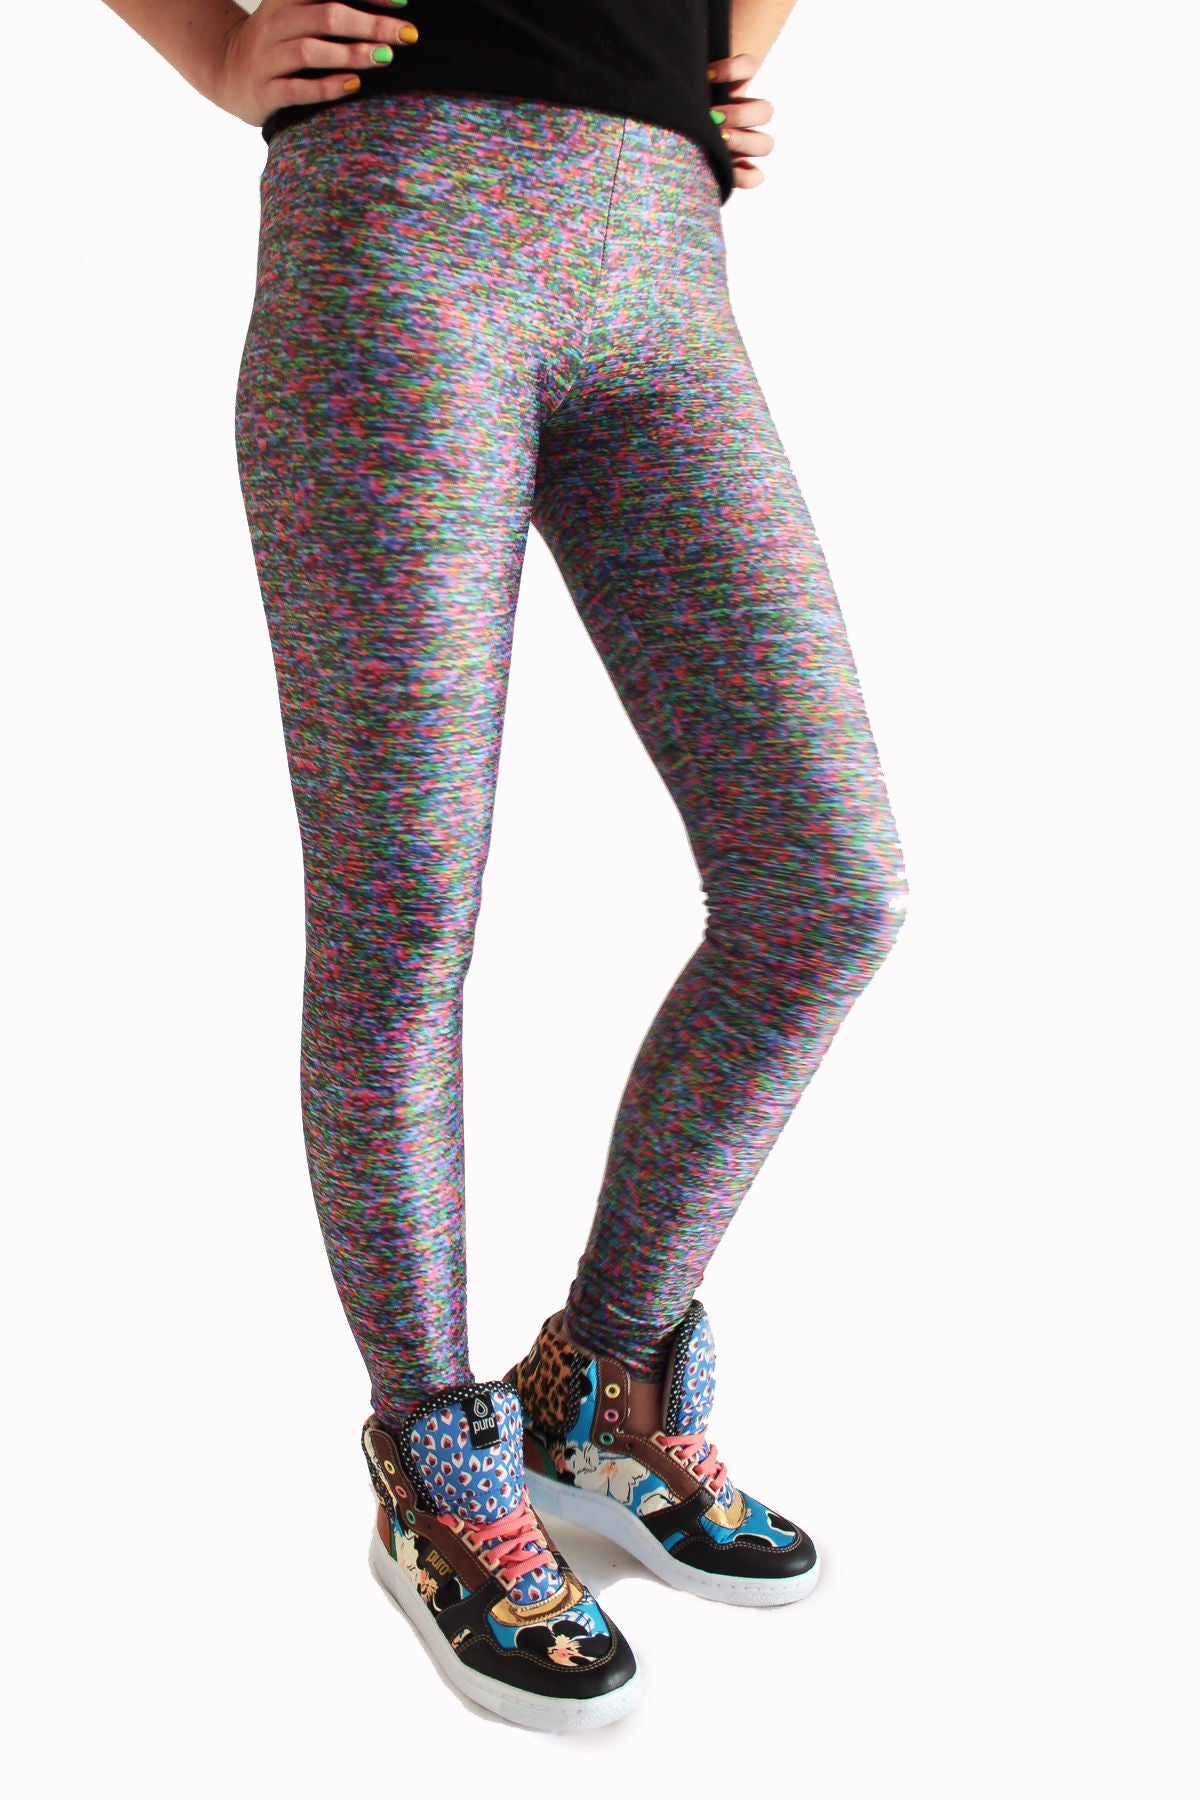 VHS Leggings | VHS Leggings-Leggings-Eat me!